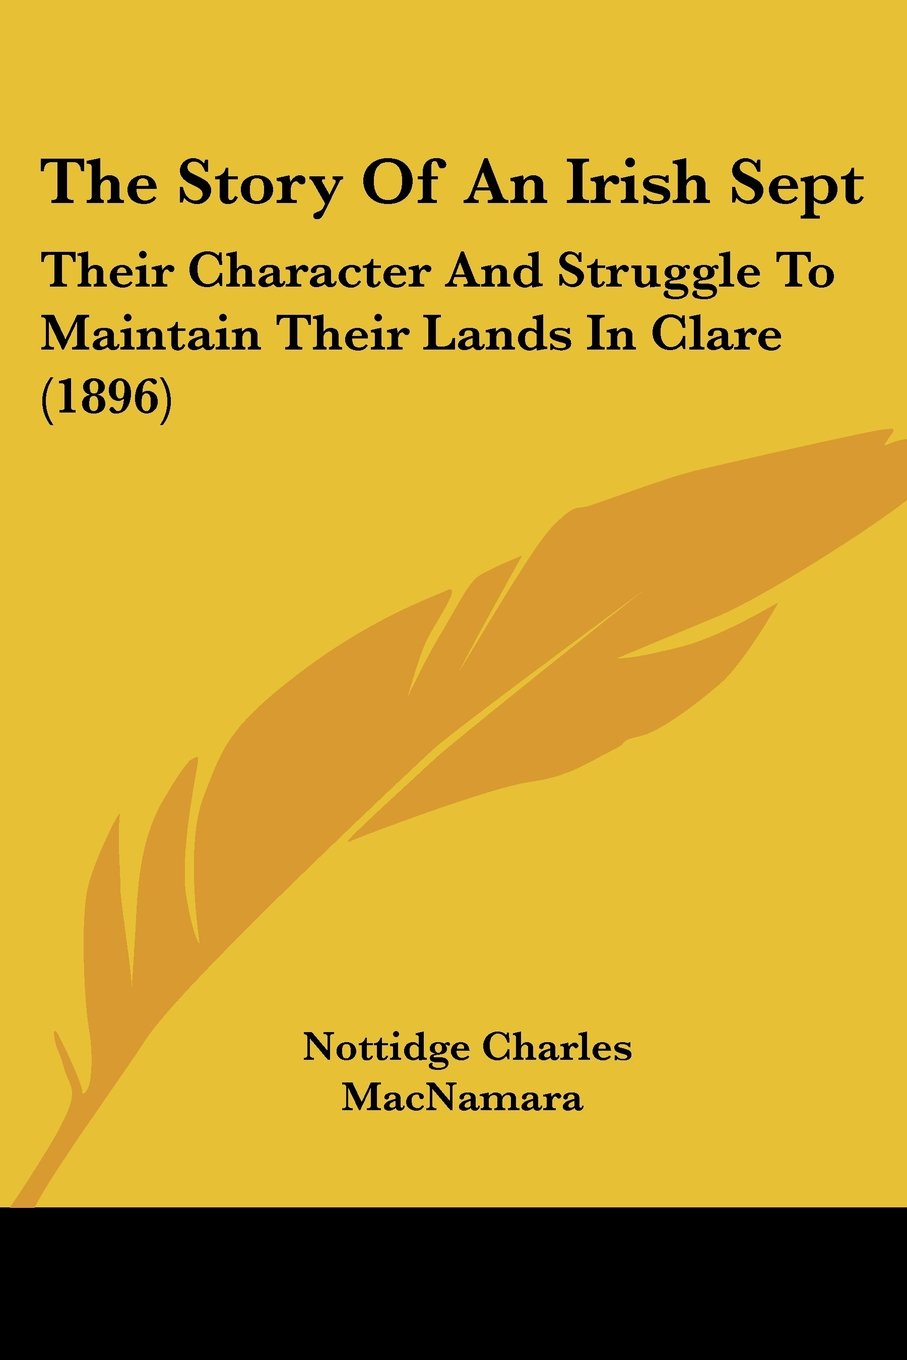 Download The Story Of An Irish Sept: Their Character And Struggle To Maintain Their Lands In Clare (1896) pdf